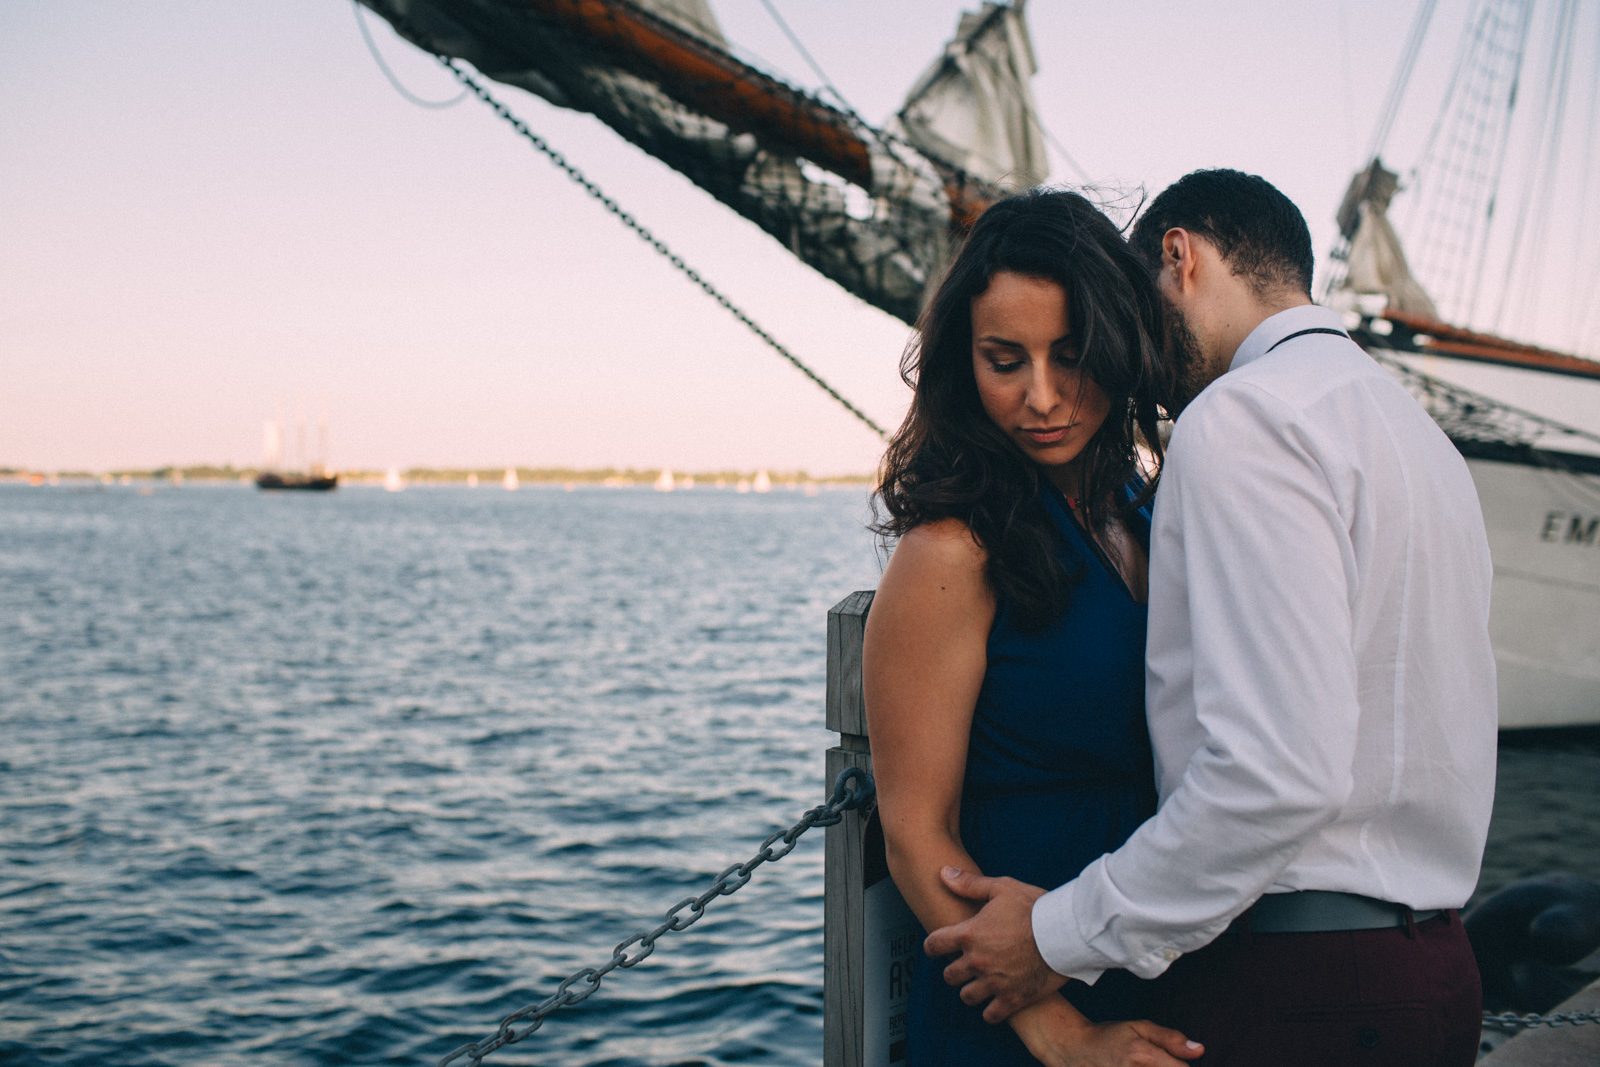 Toronto-waterfront-lifestyle-engagement-photography-by-Sam-Wong-Visual-Cravings_09